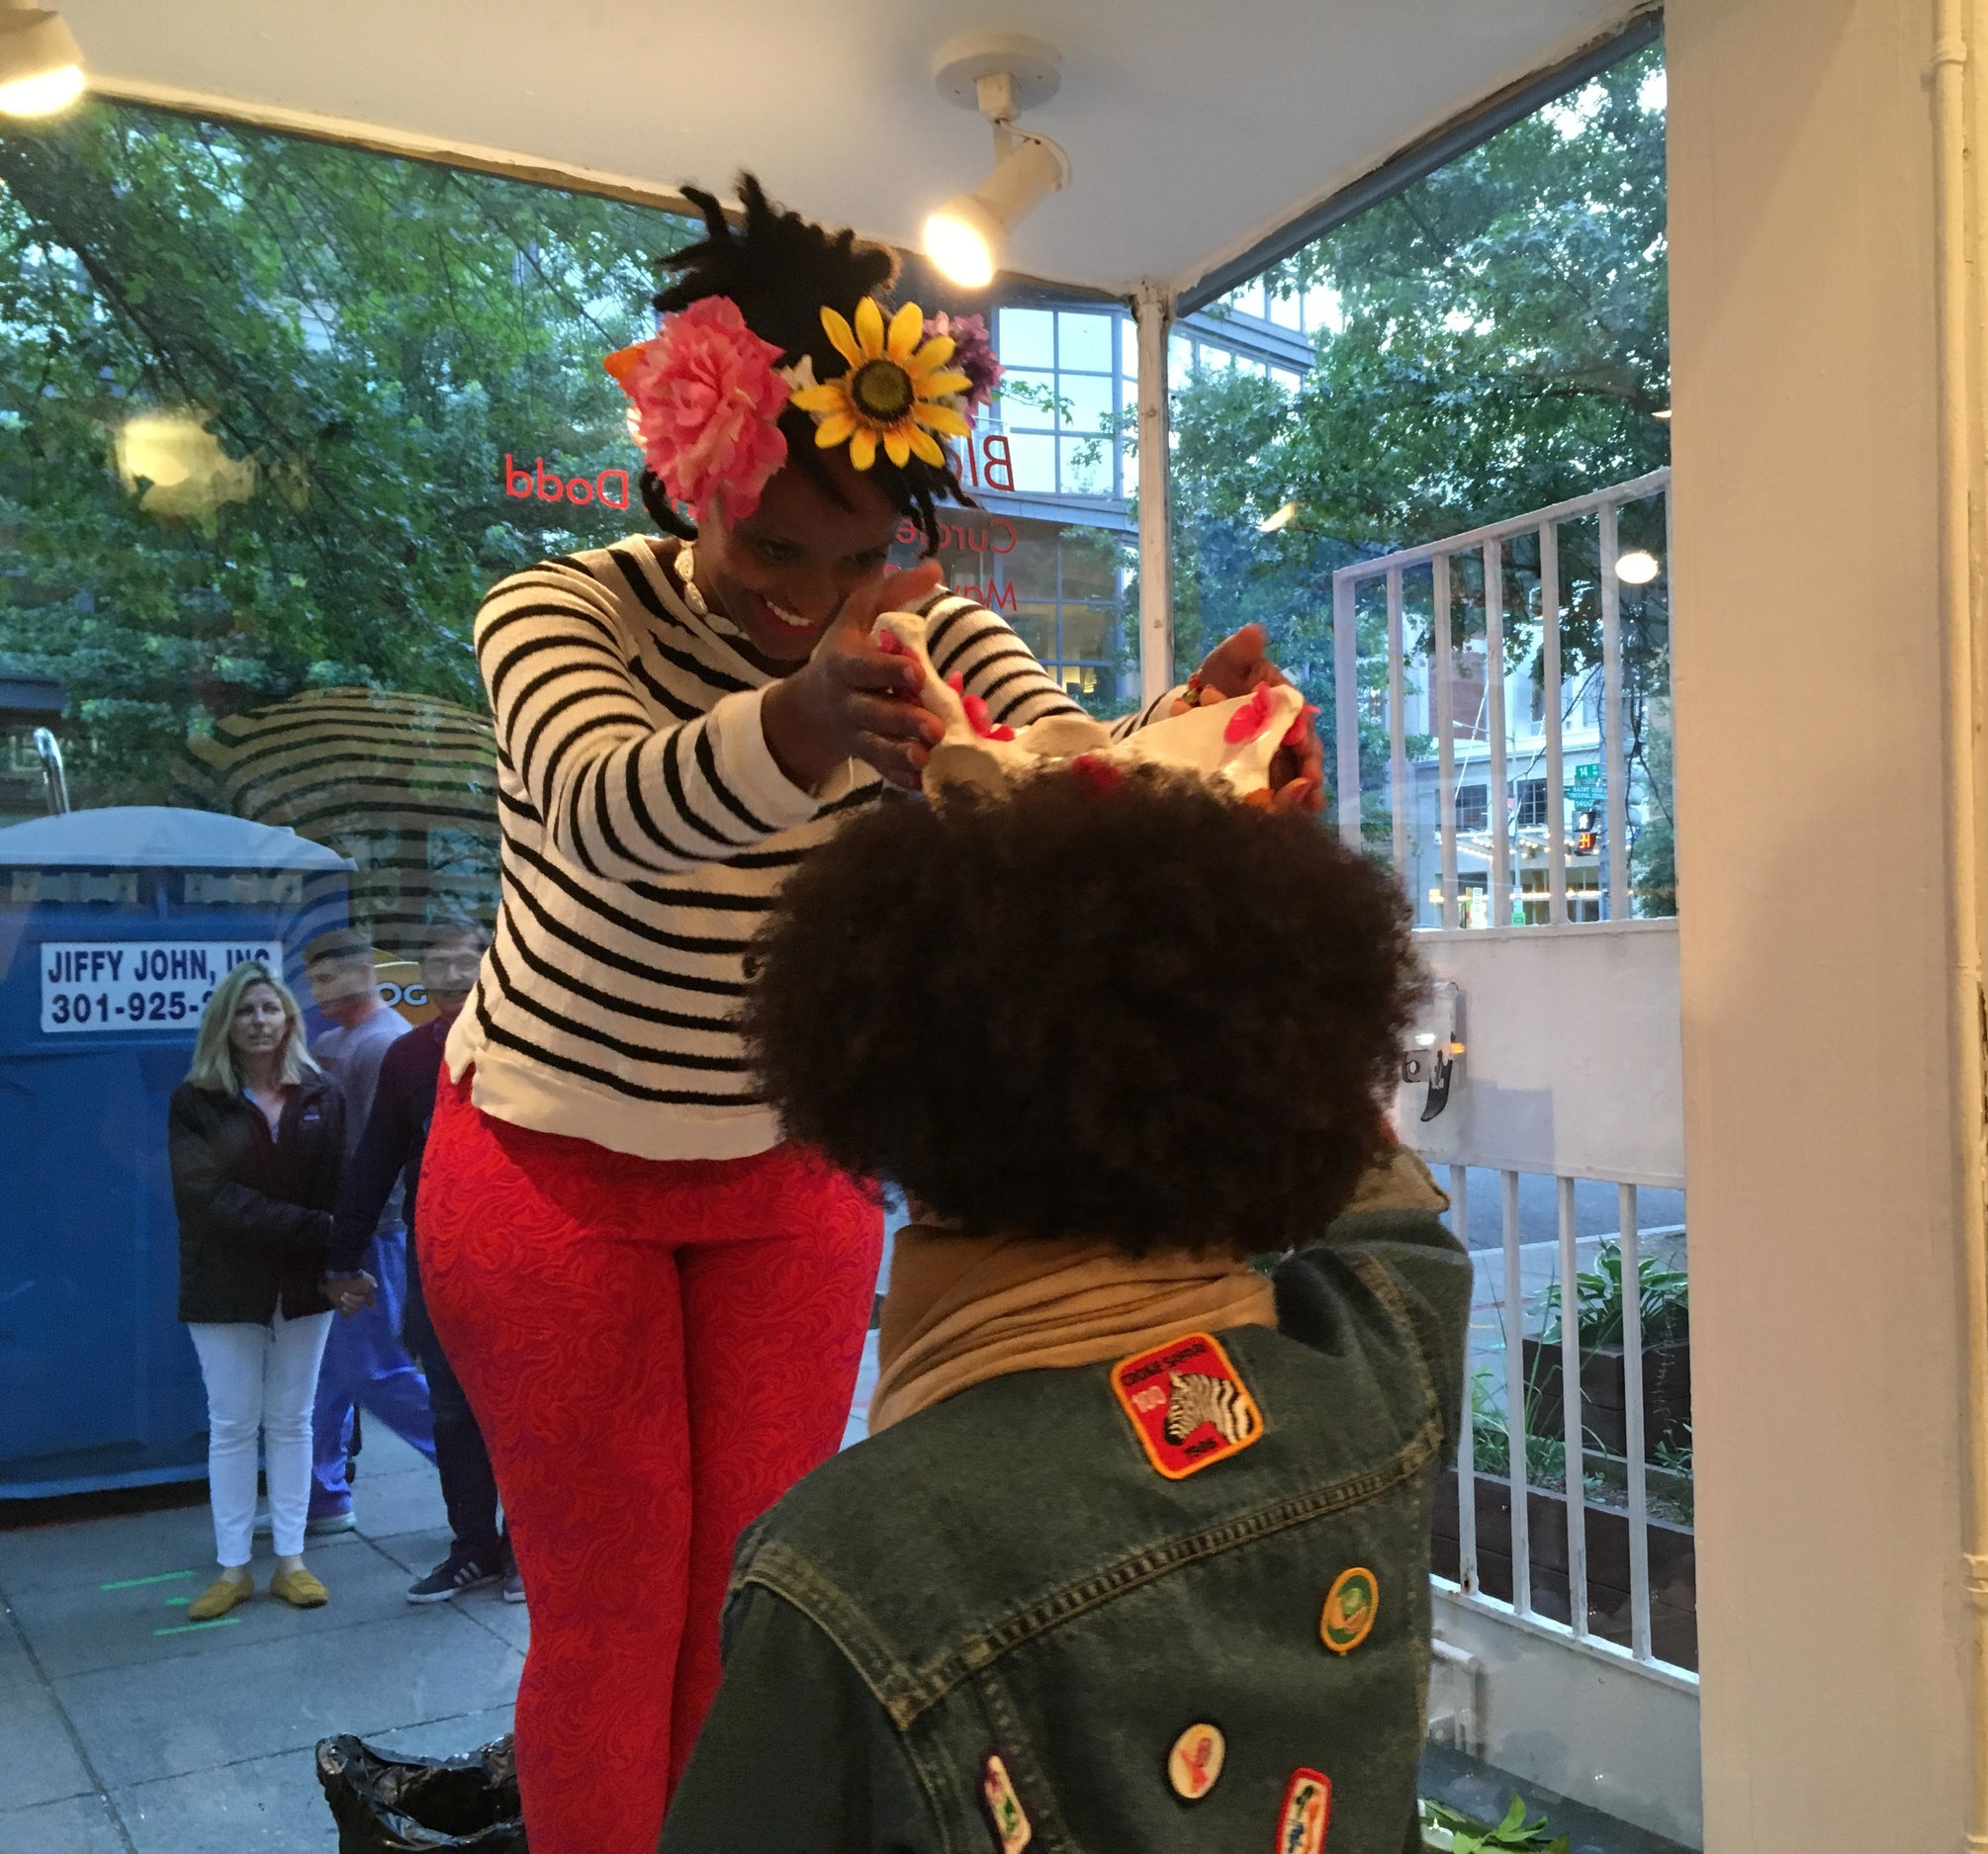 The Crowing, A Performance by  Tseday Makonnen(Image c/o Transformer)